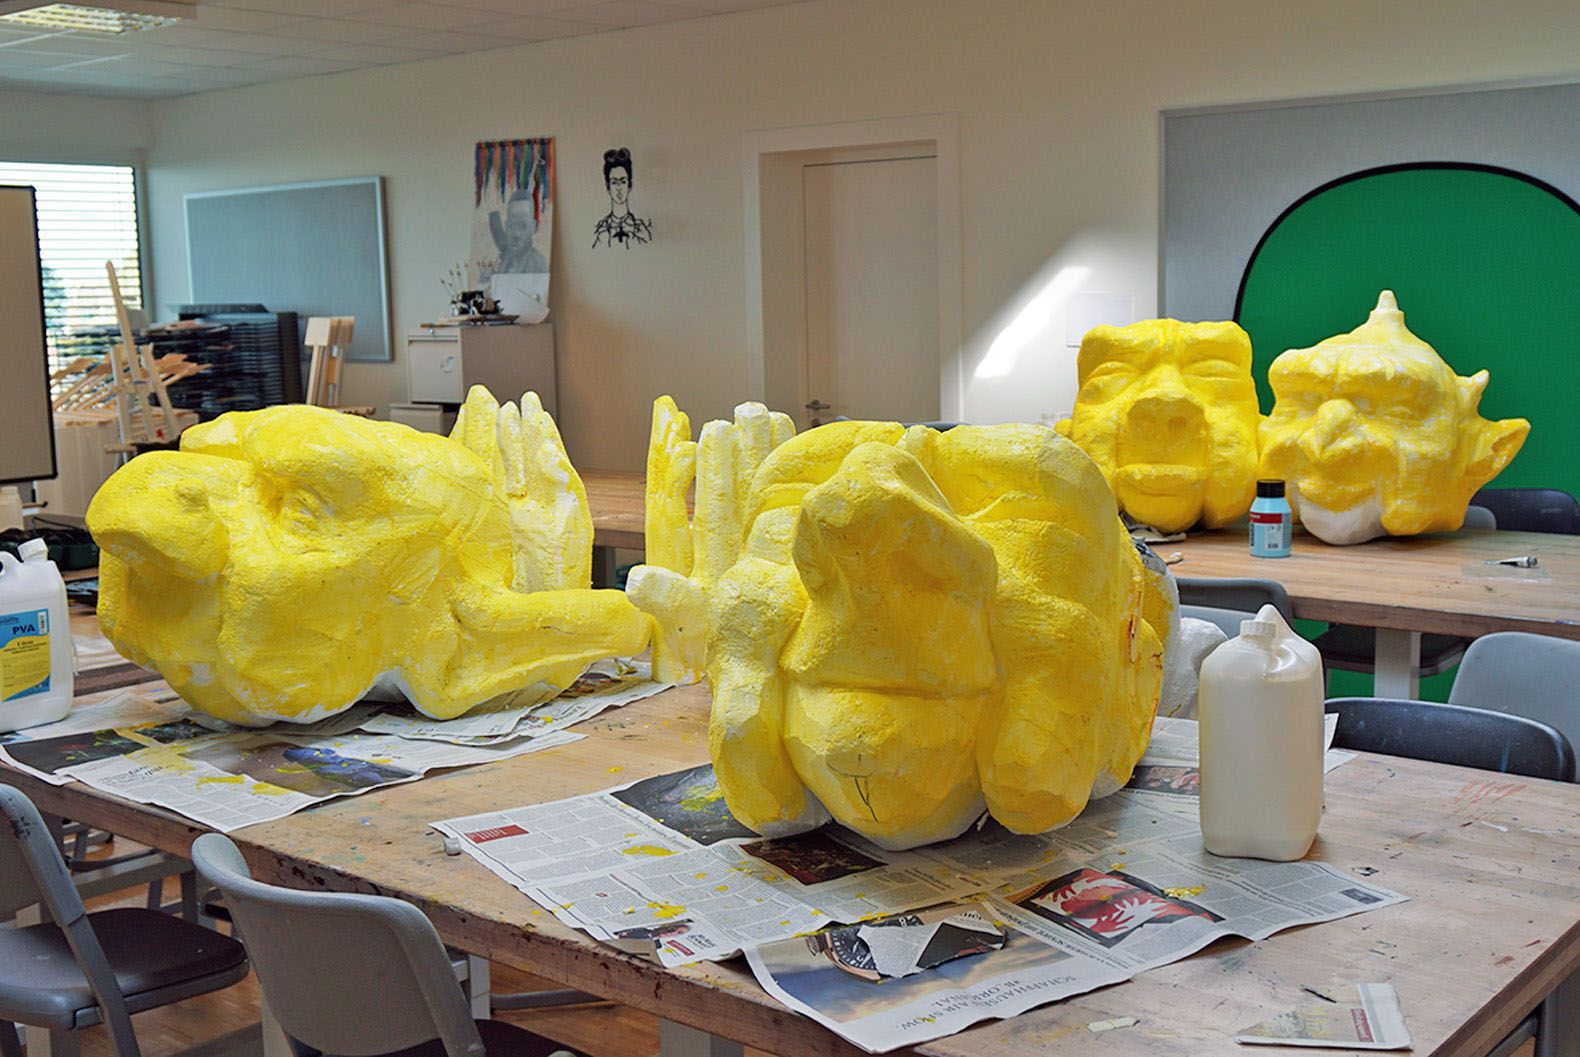 A touch of color transforms the Styrofoam heads.